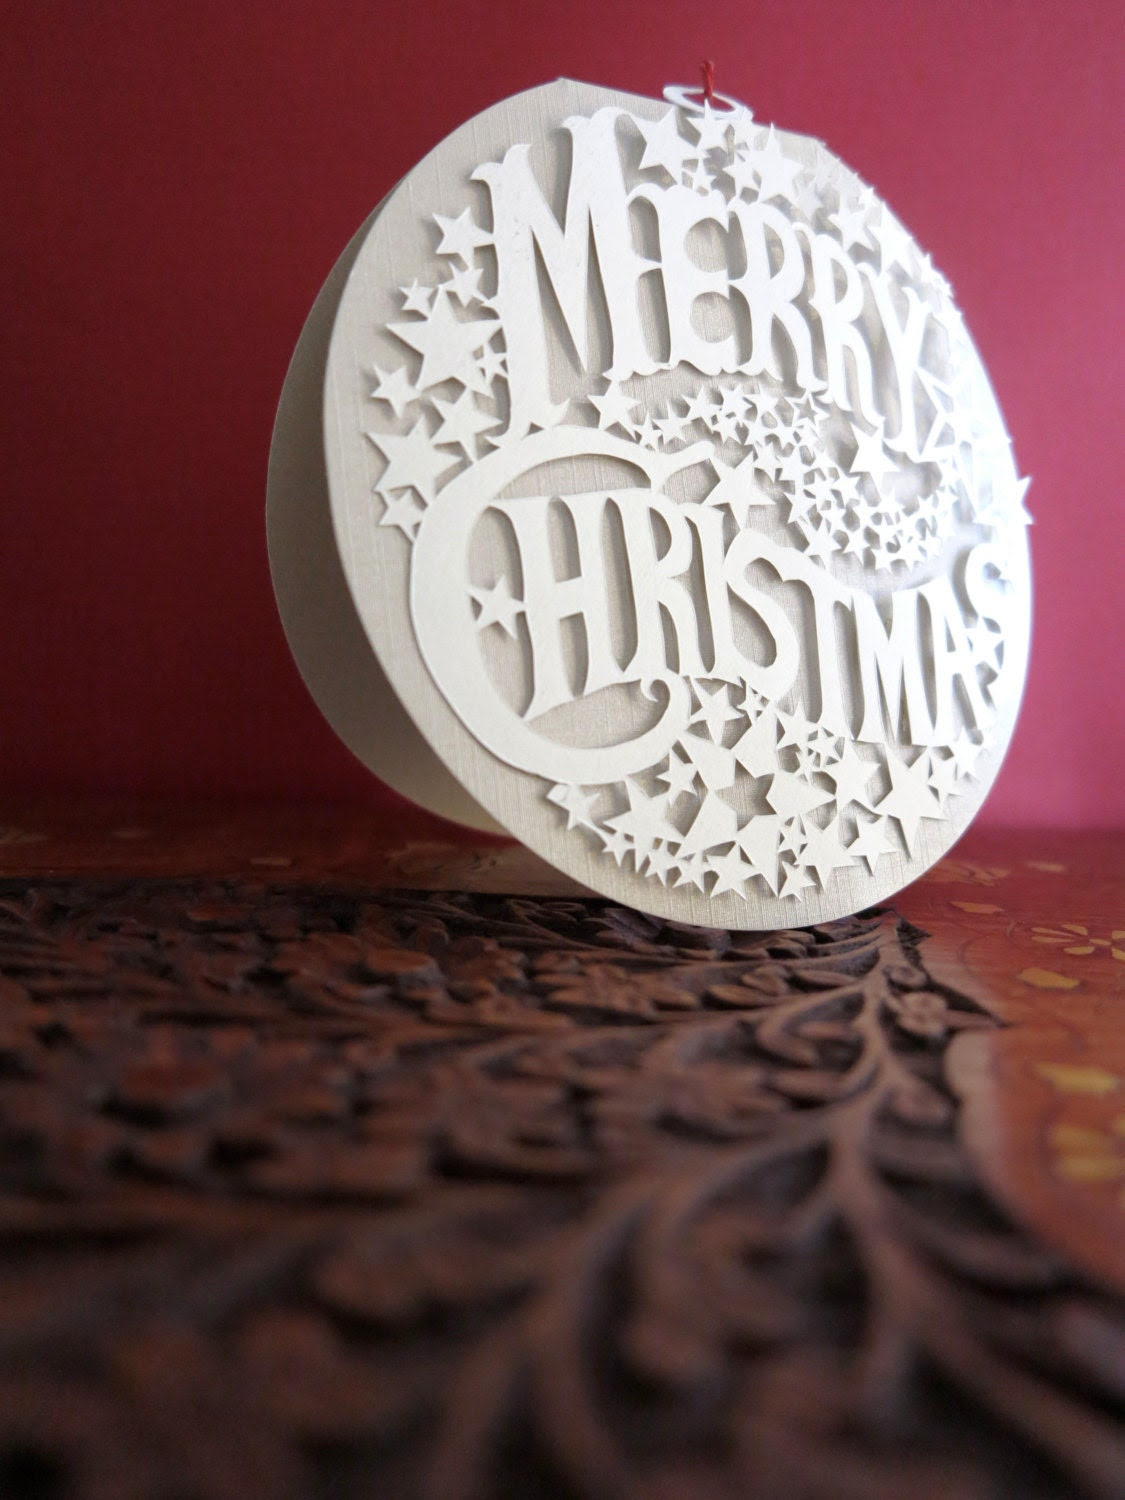 Merry christmas handmade papercut greetingcard - Christmas greeting card  and gift in one - Christmas pendant - Christmas papercut giftpa